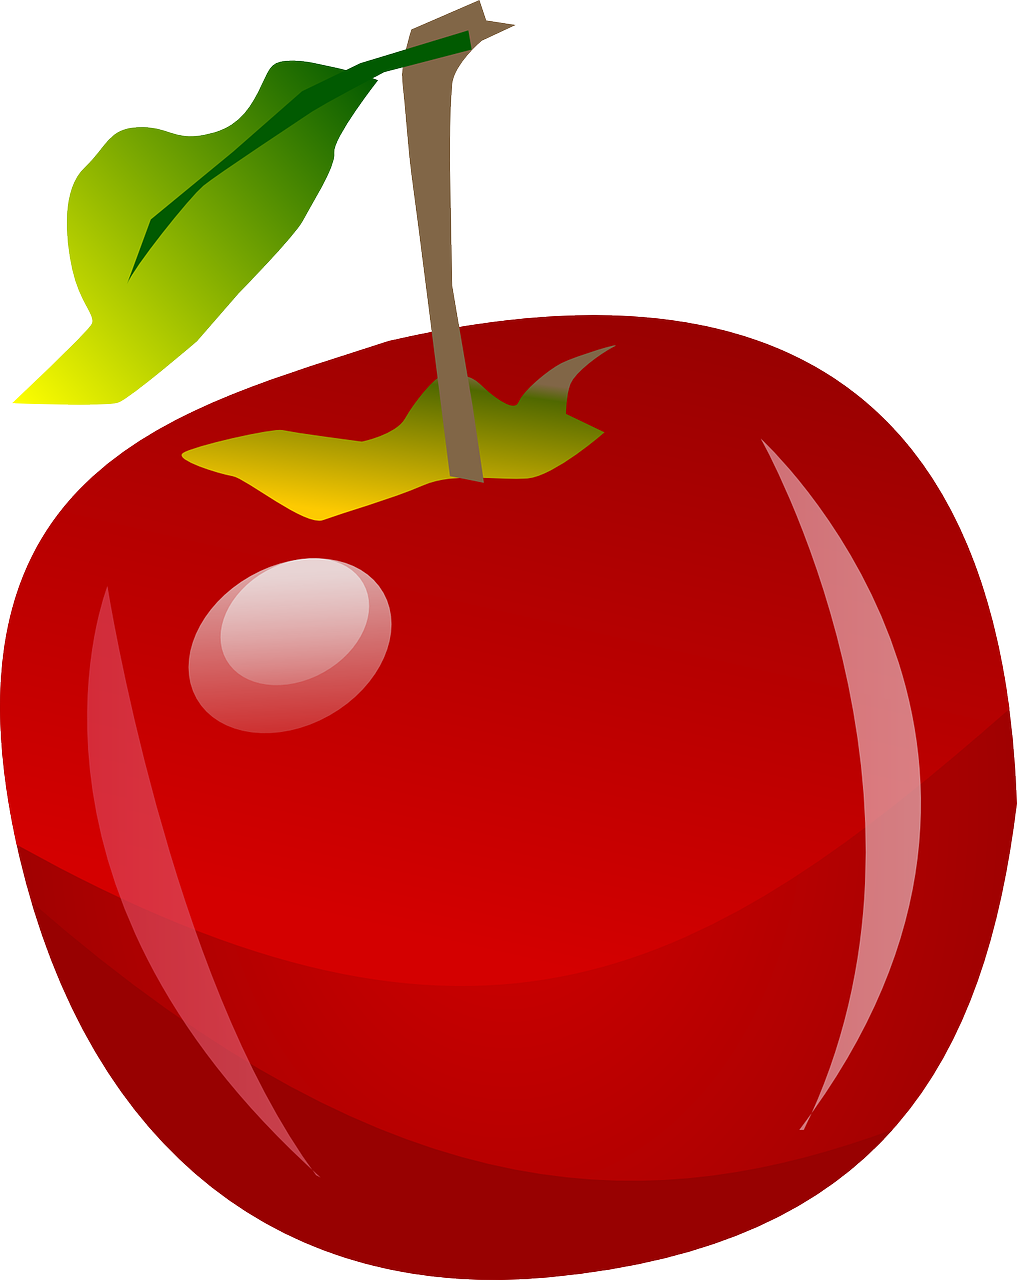 Fruits clipart kid.  collection of apple